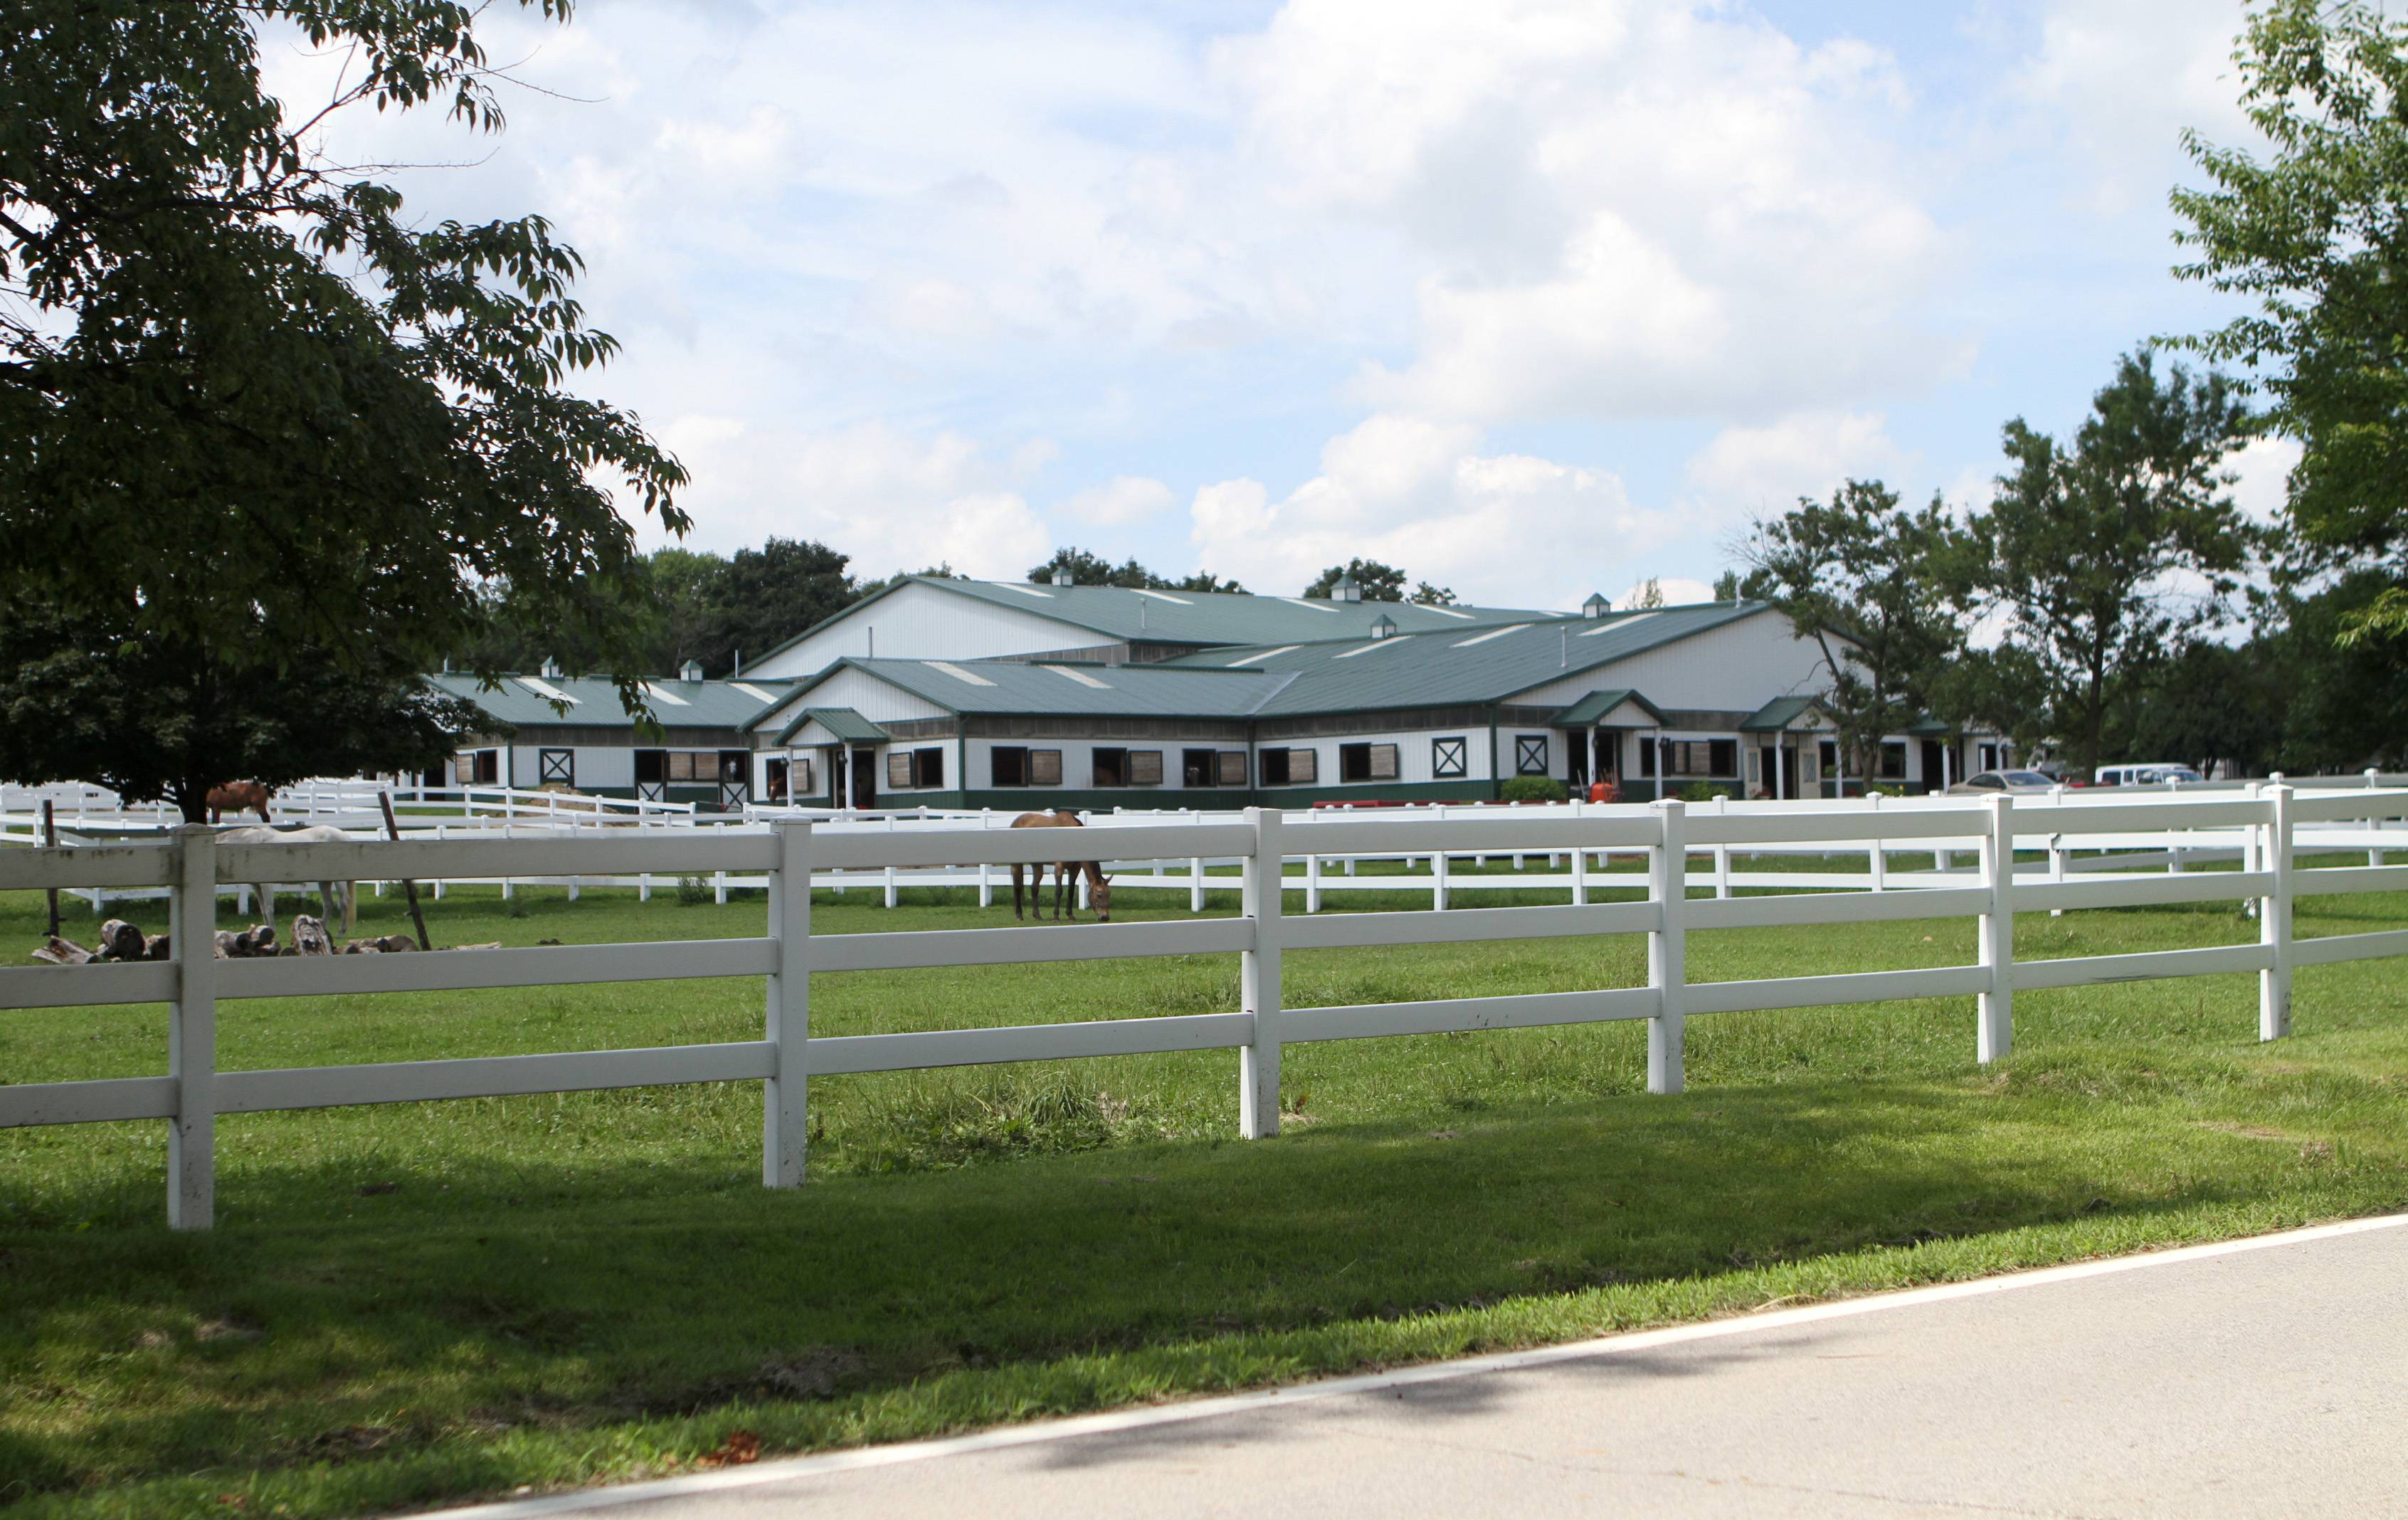 Barrington Hills passes new rules on horse boarding